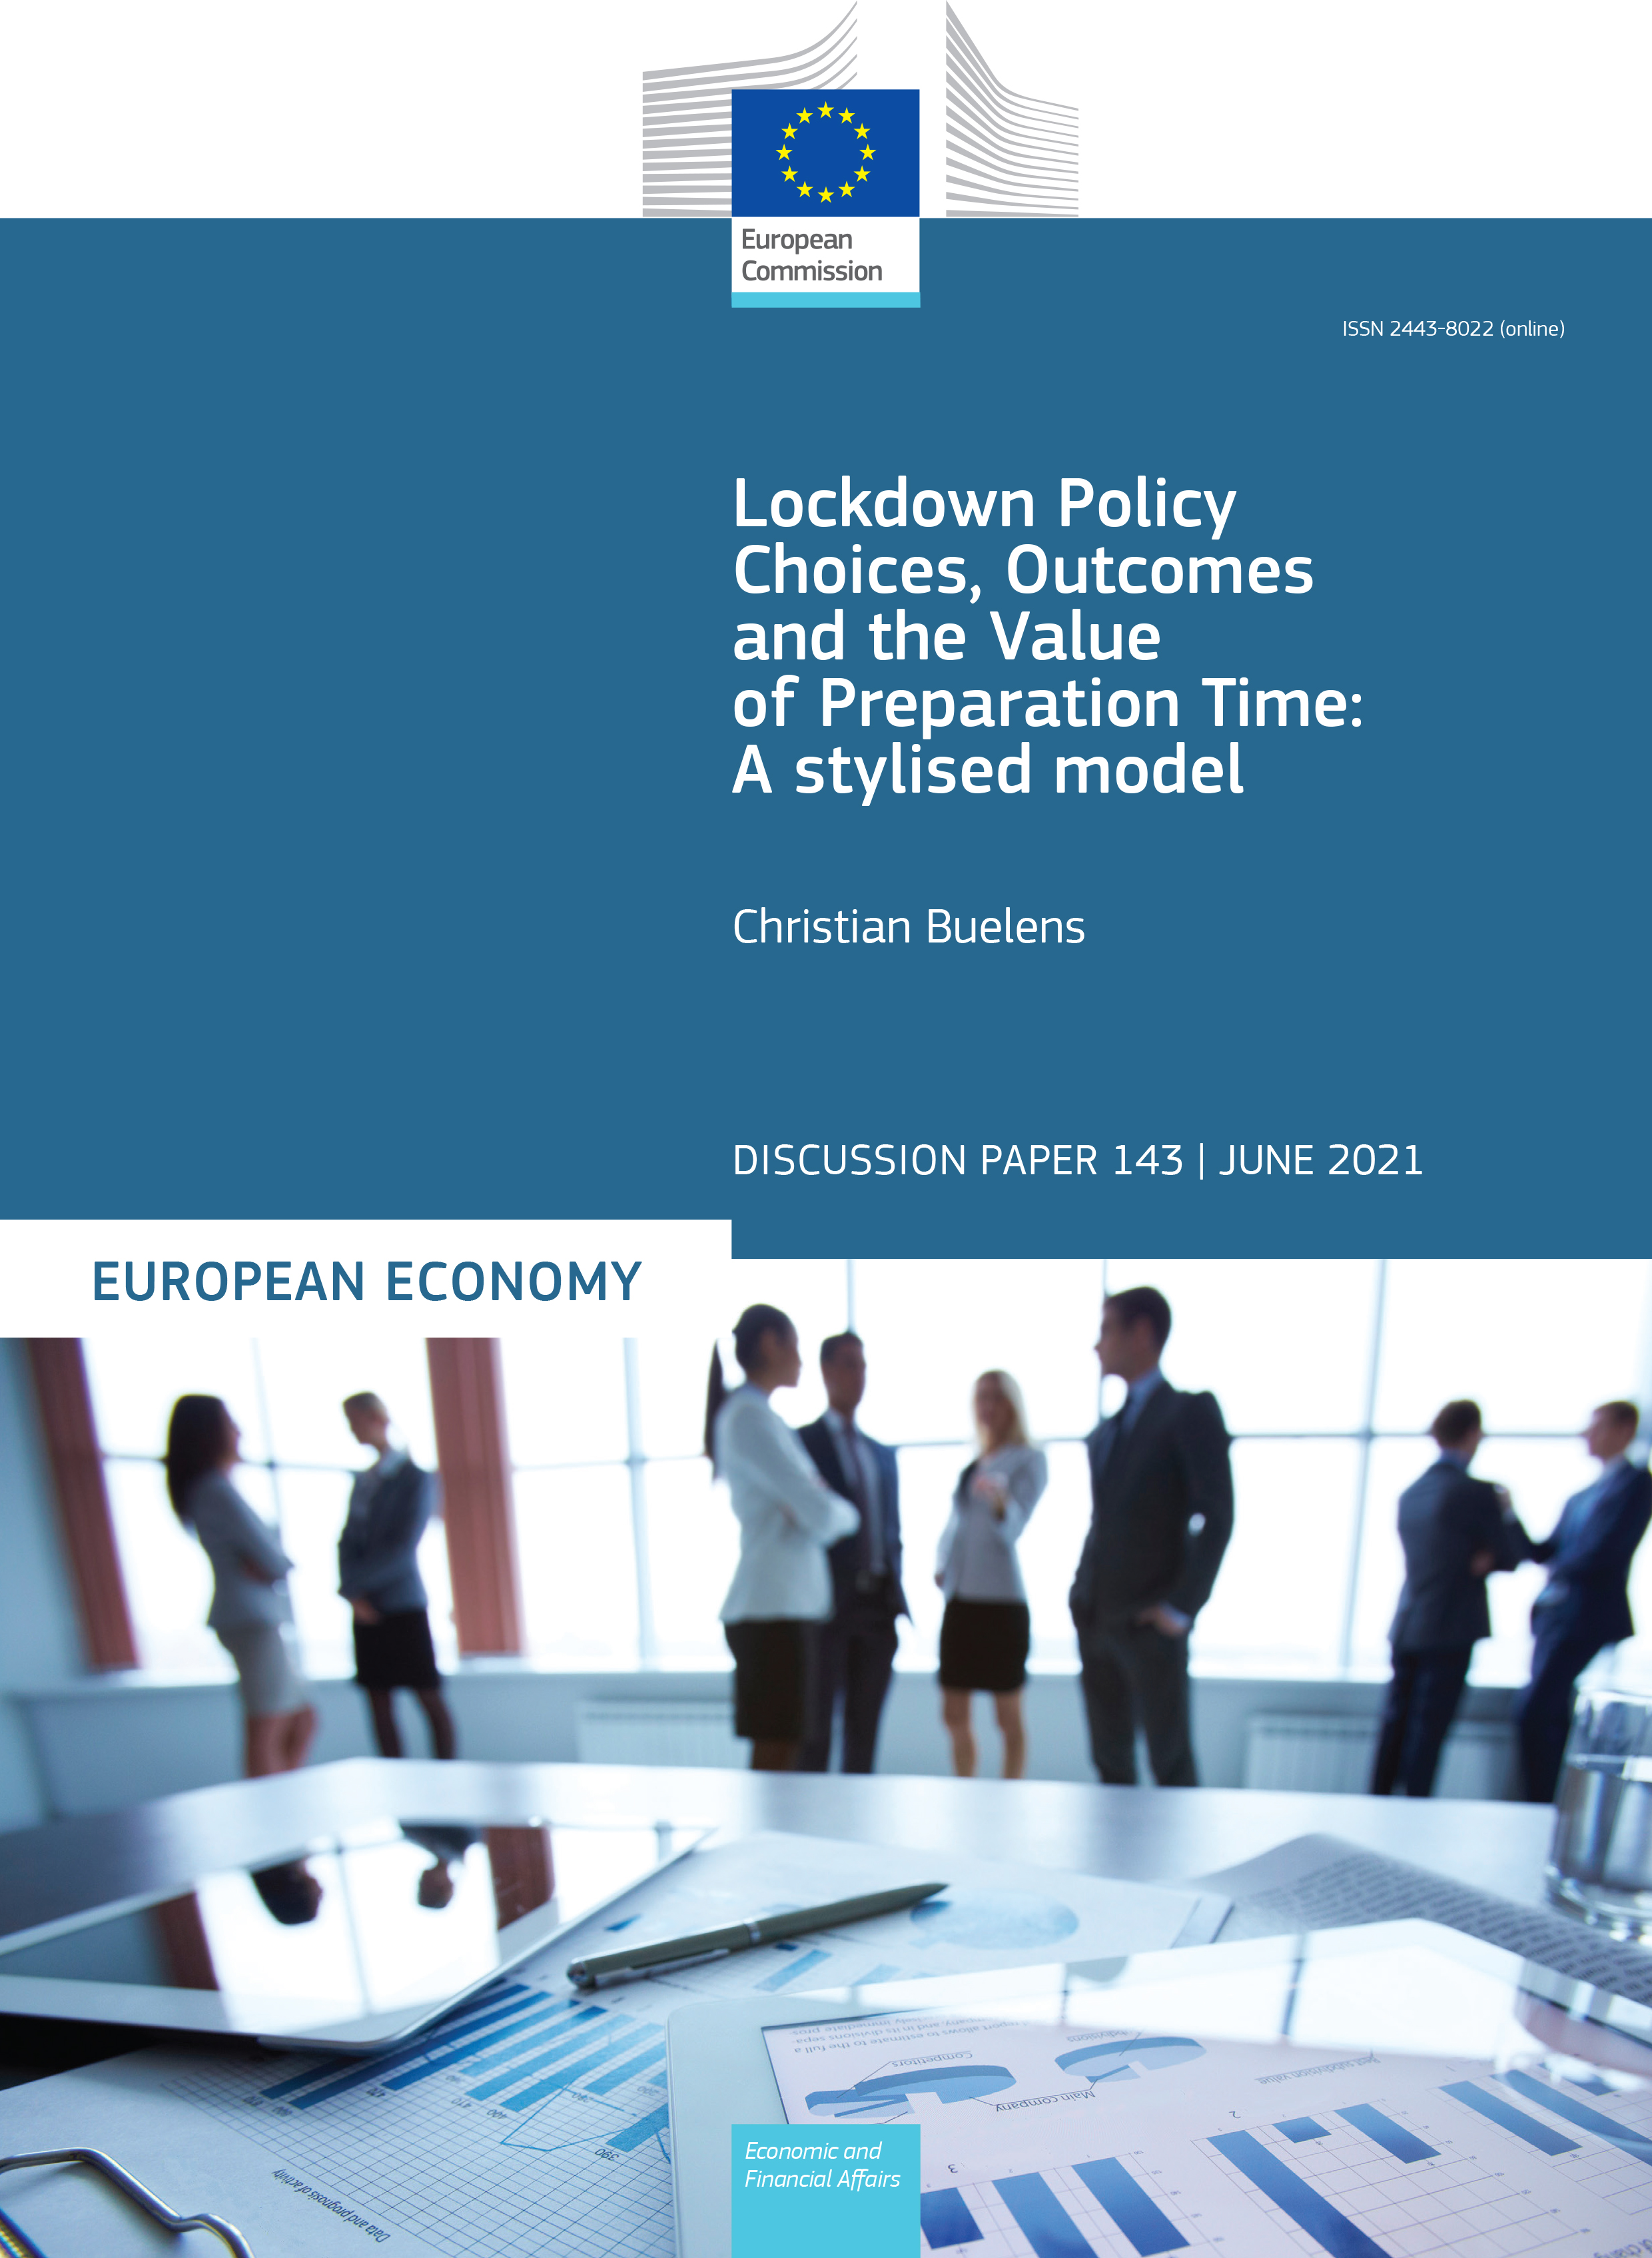 Lockdown Policy Choices, Outcomes and the Value of Preparation Time: A stylised model